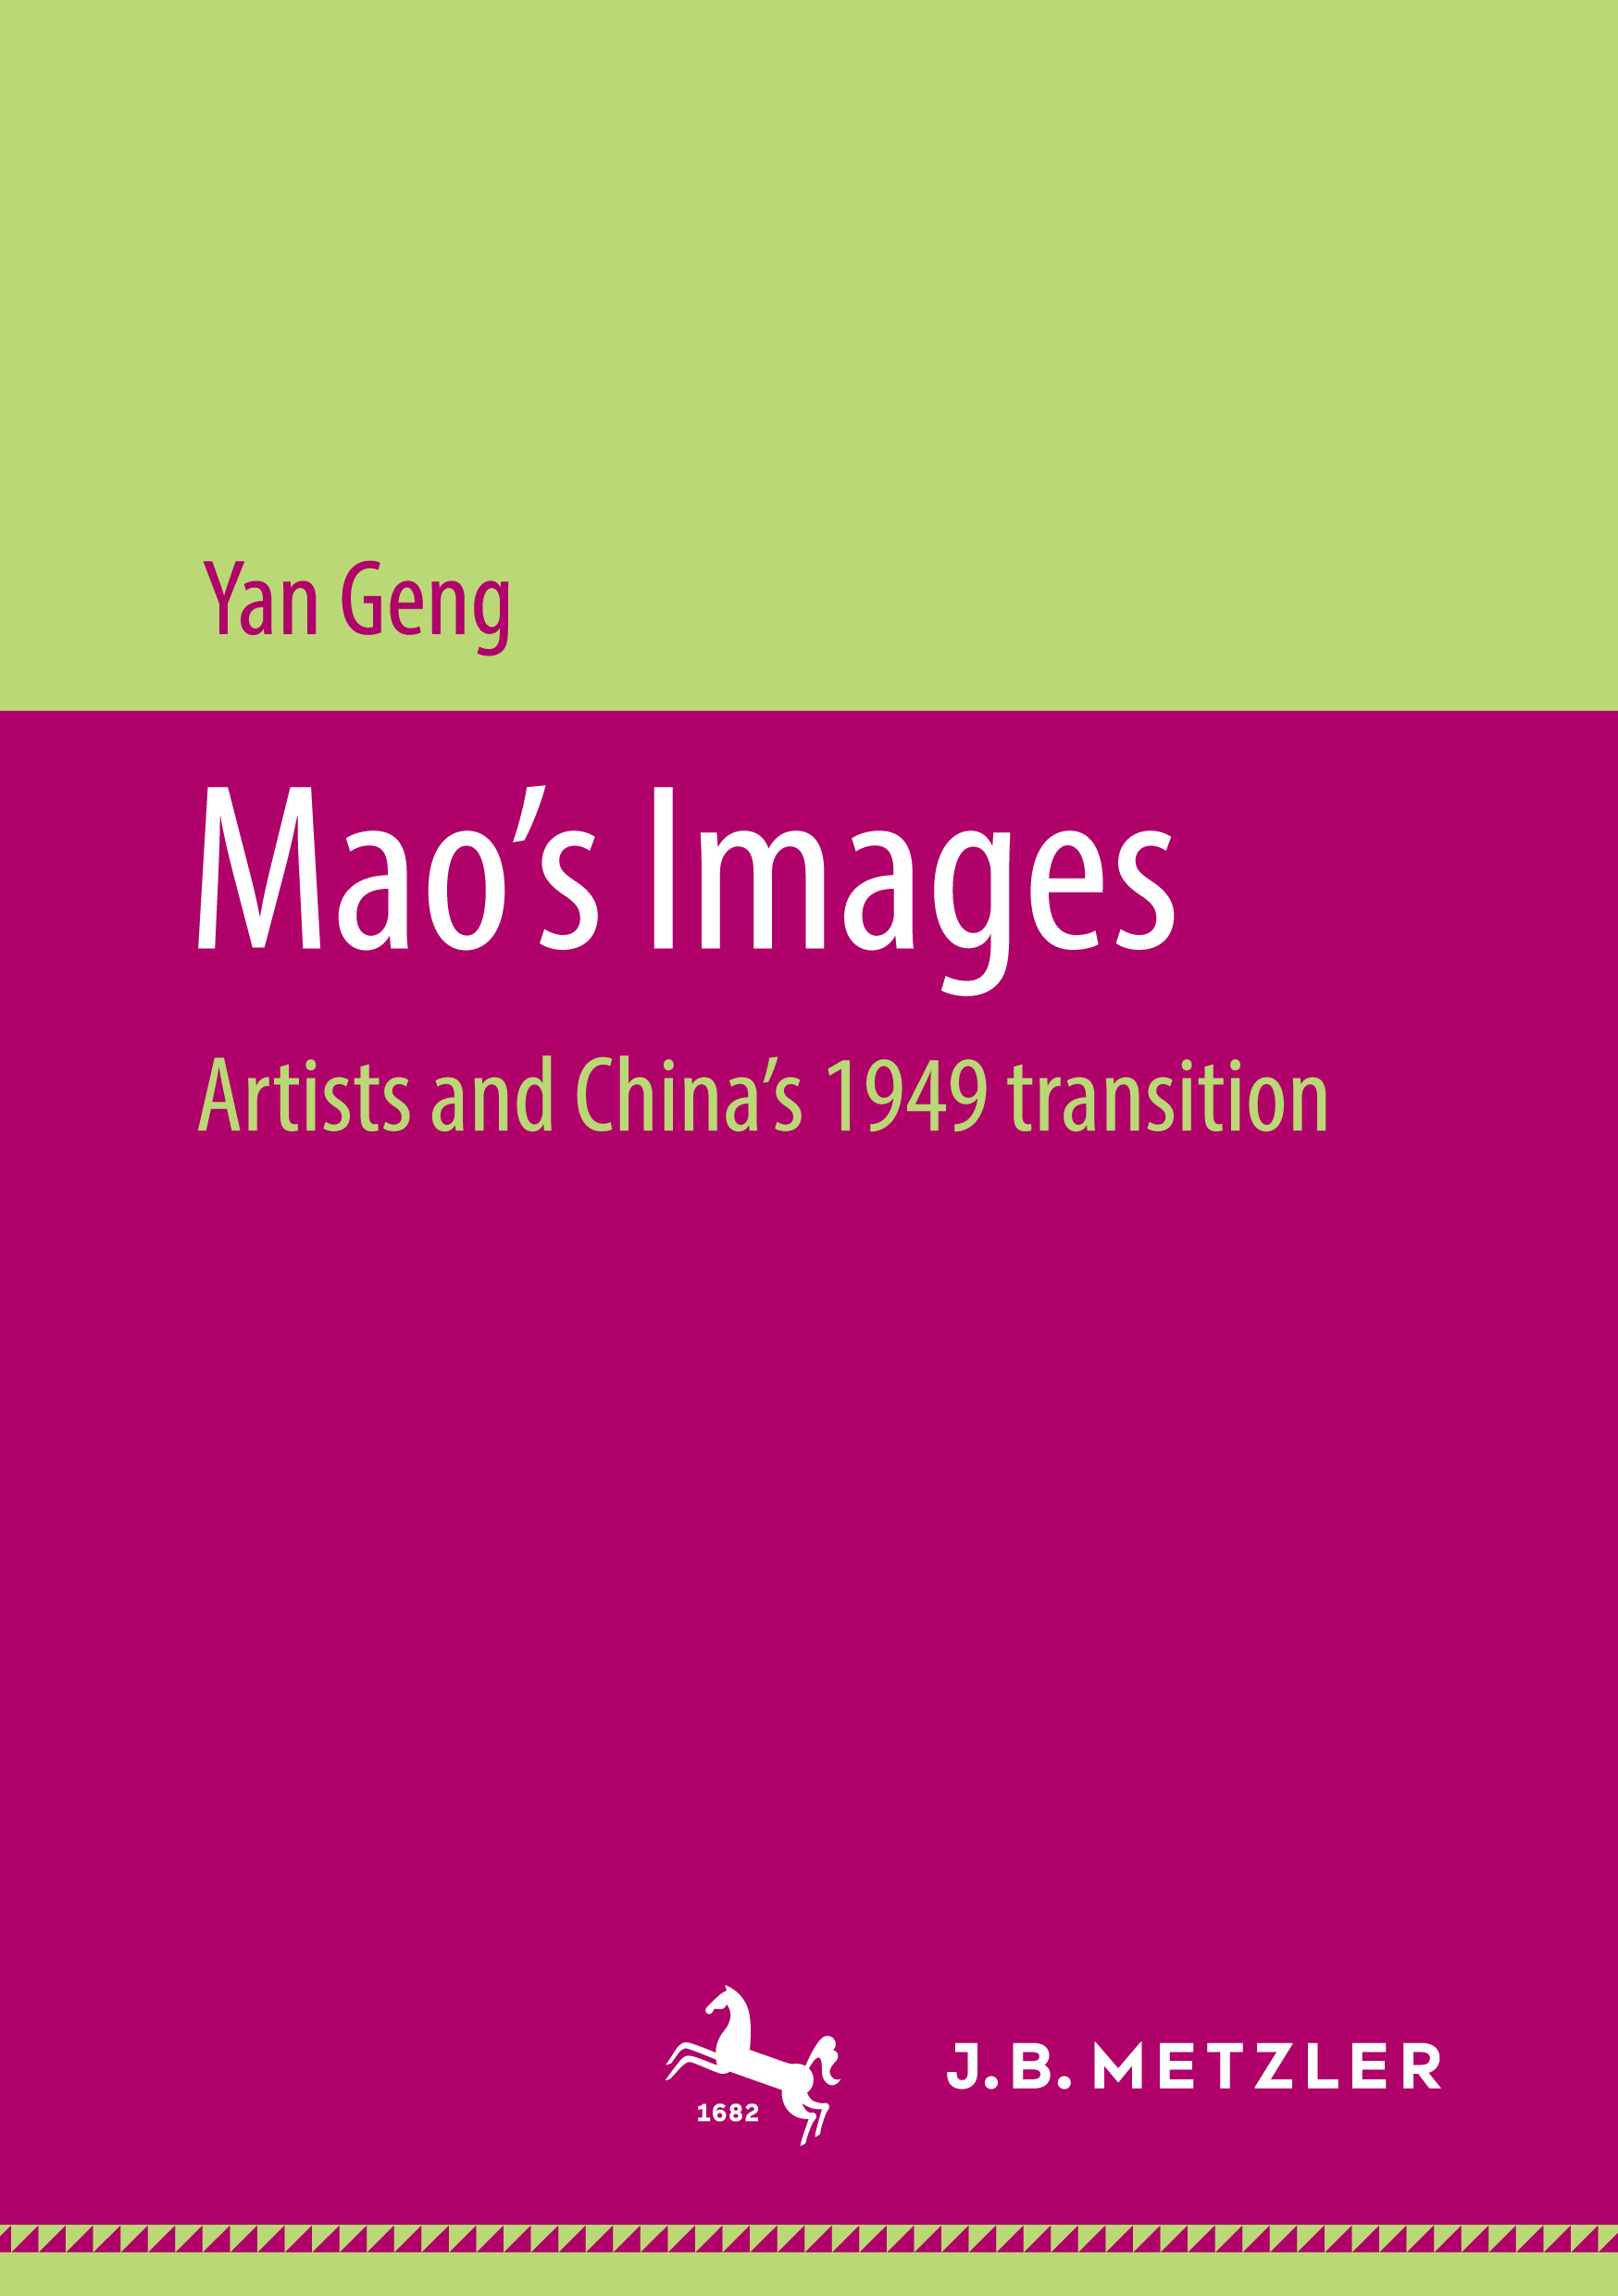 Yan Geng: Mao's Images. Artists and China's 1949 transition. J. B. Metzler